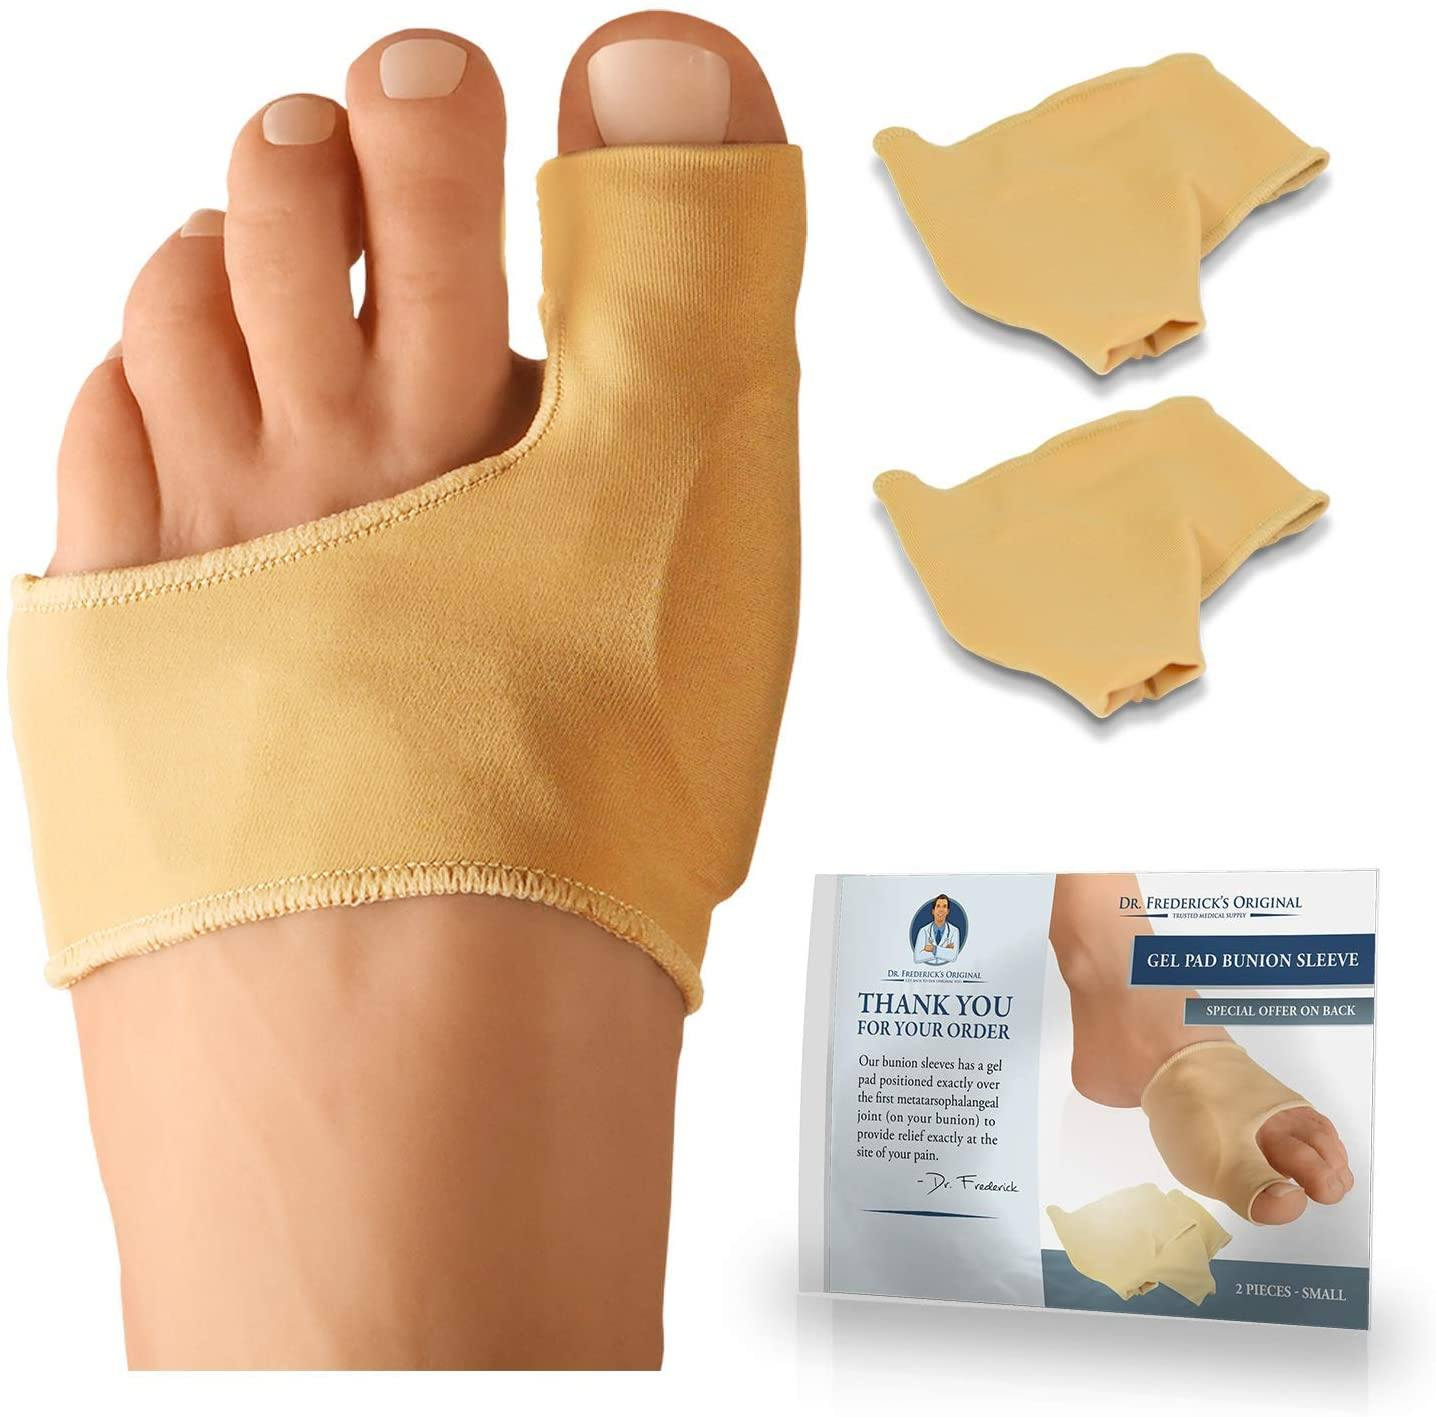 Dr. Frederick's Original Bunion Sleeve Booties - 2 Pieces -- for Low Profile Cushioning of Bunions Foot Pain Dr. Frederick's Original